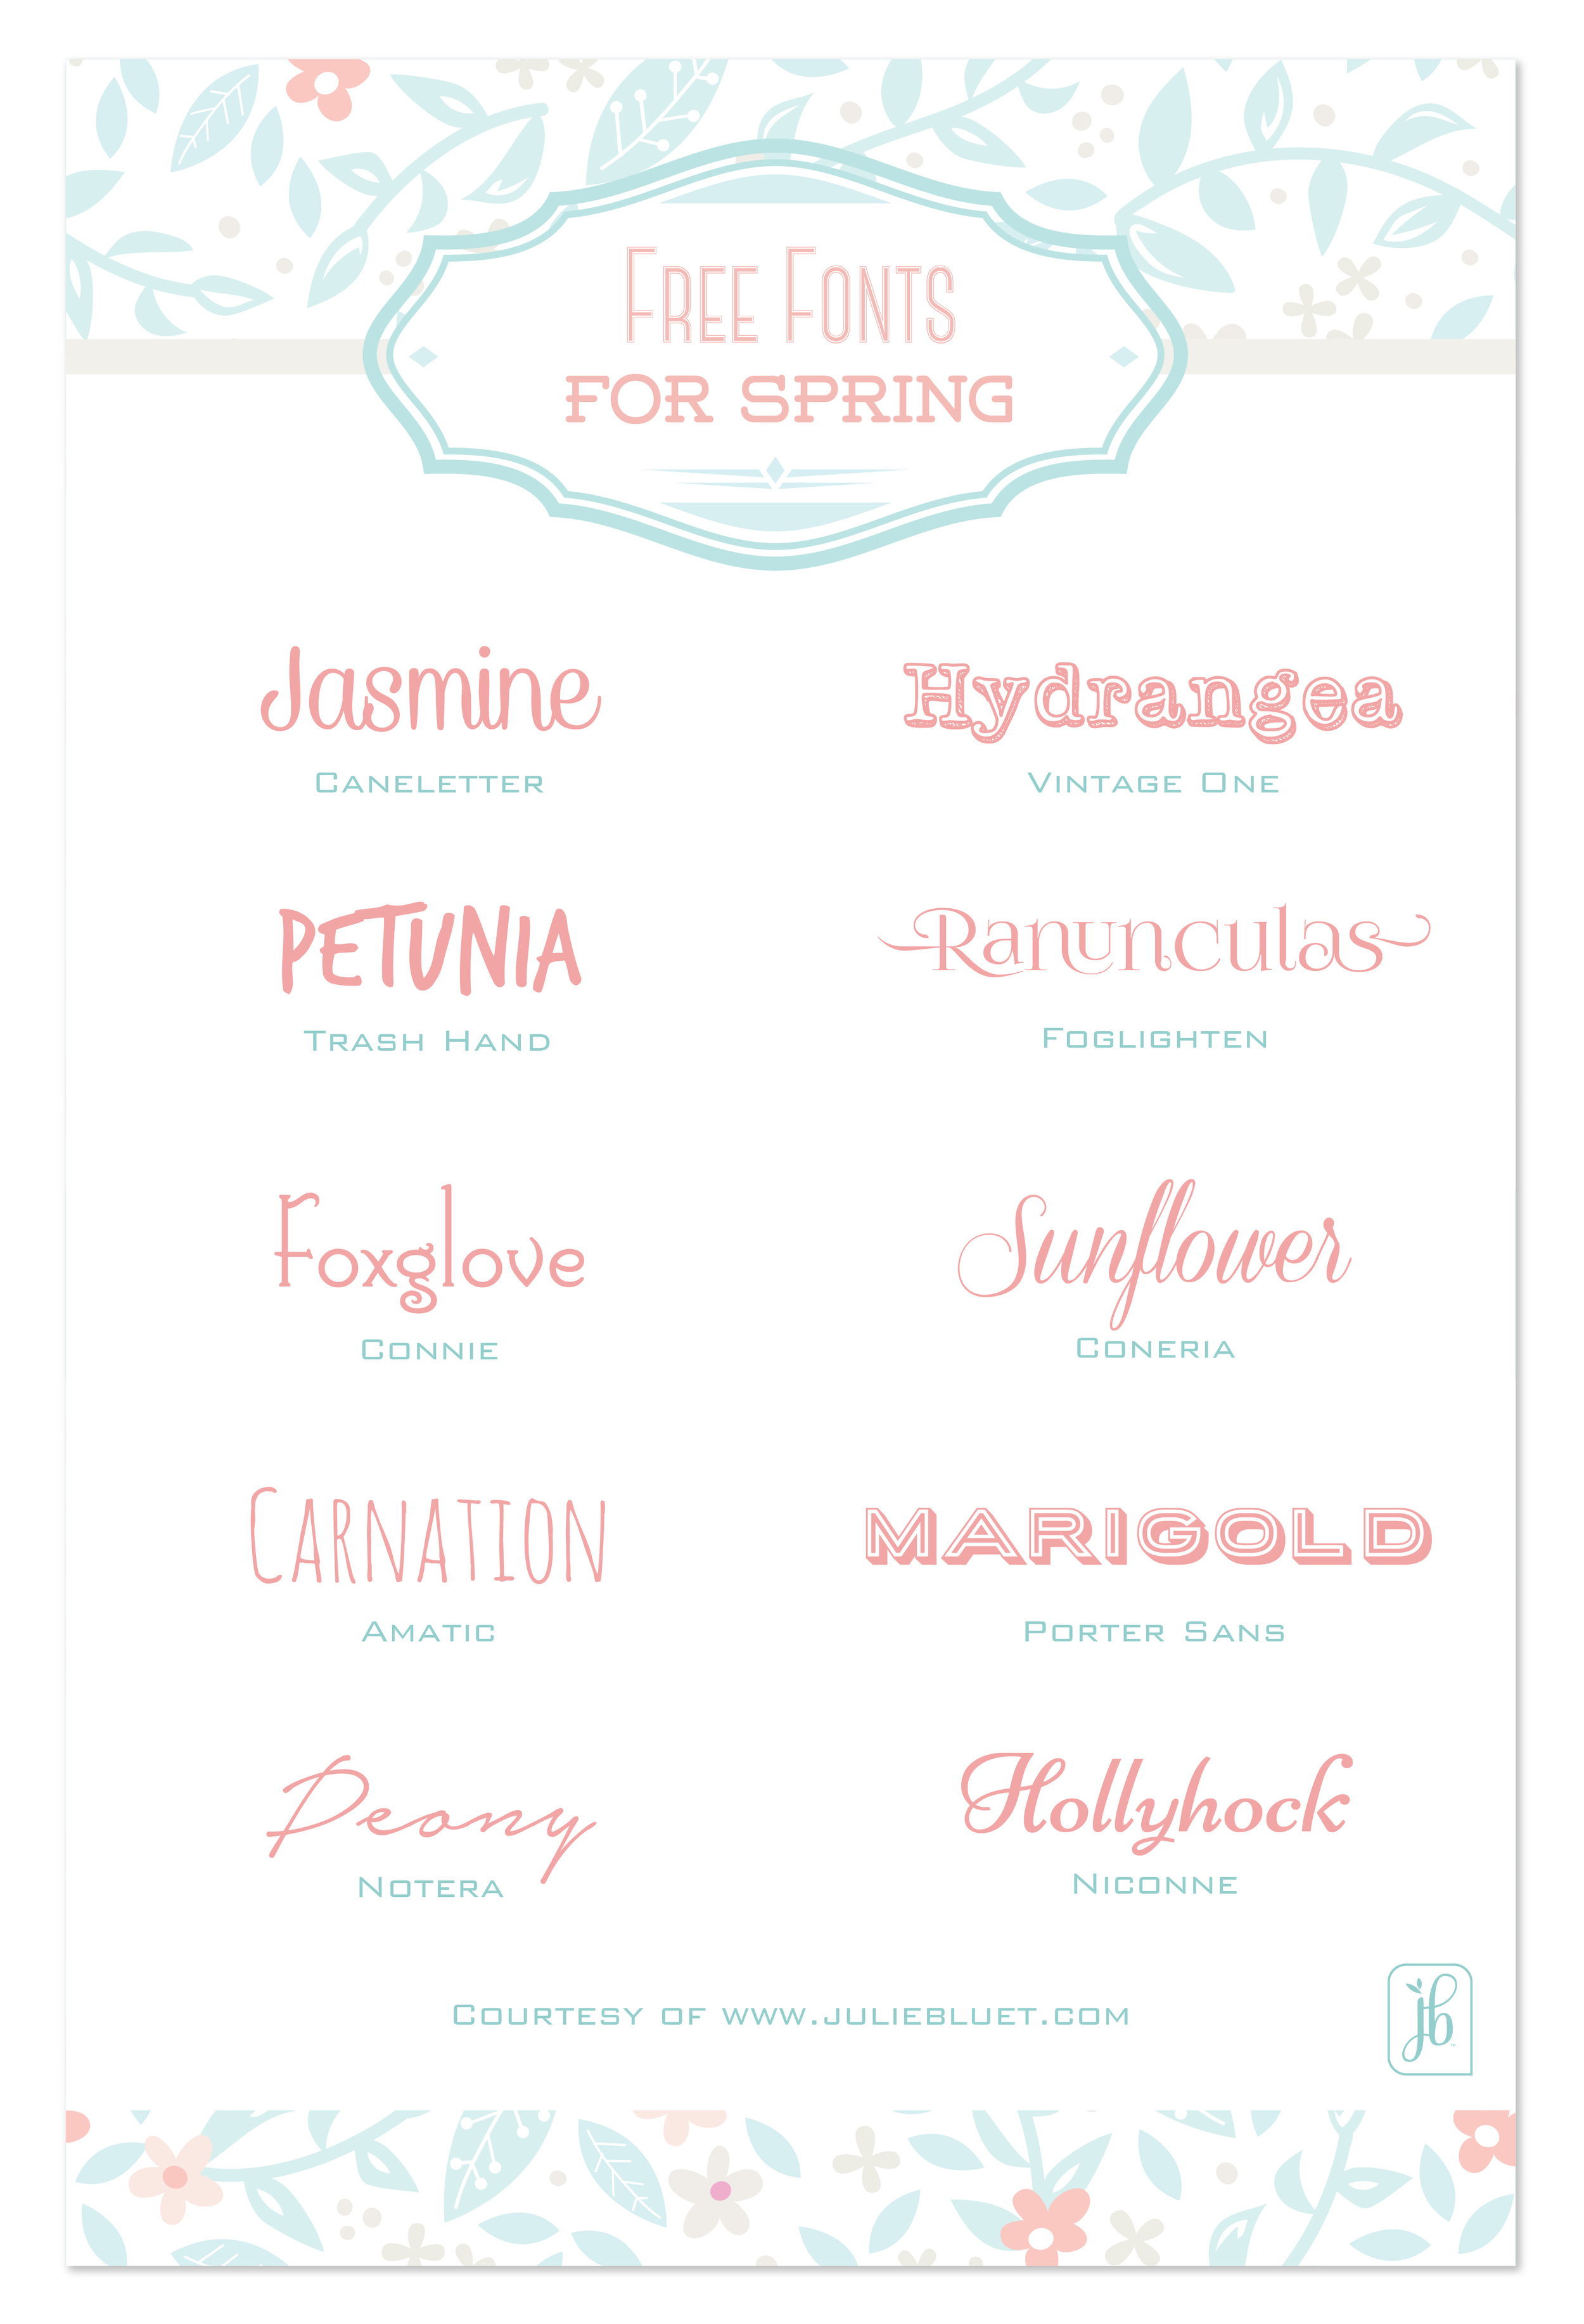 Free Fonts for Spring